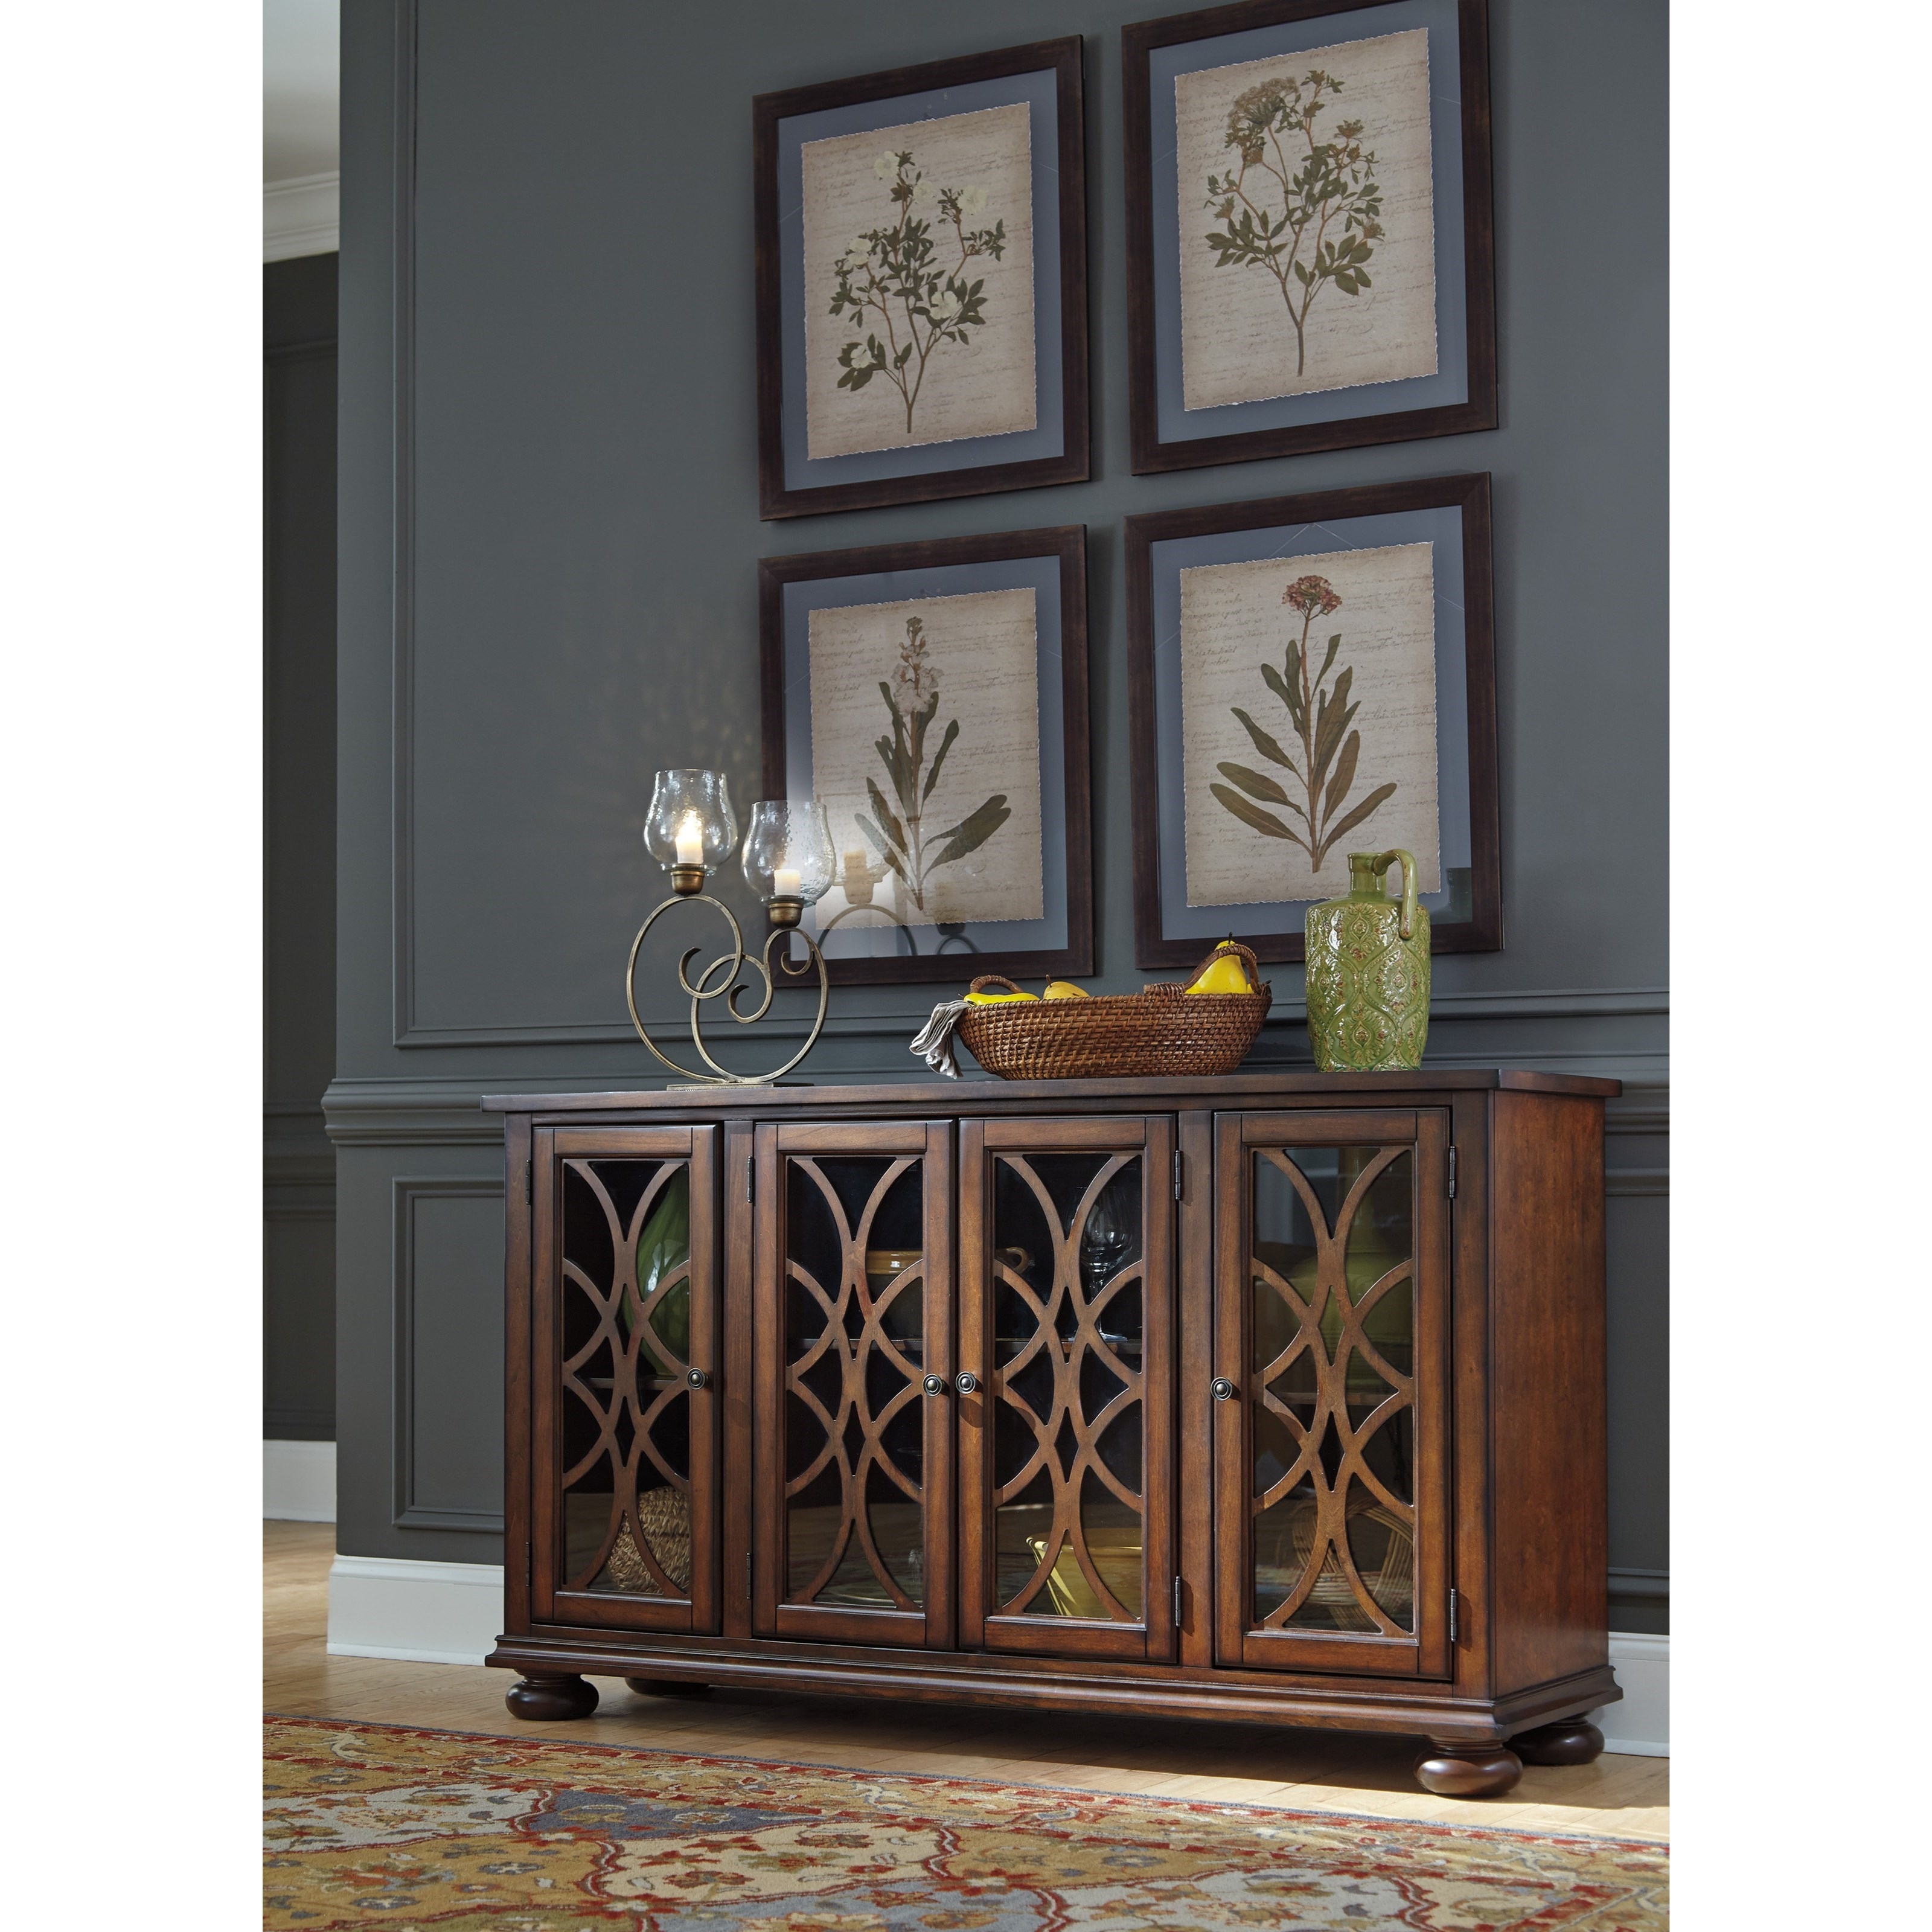 Traditional Dining Room Server With Glass Wood Grille Doors